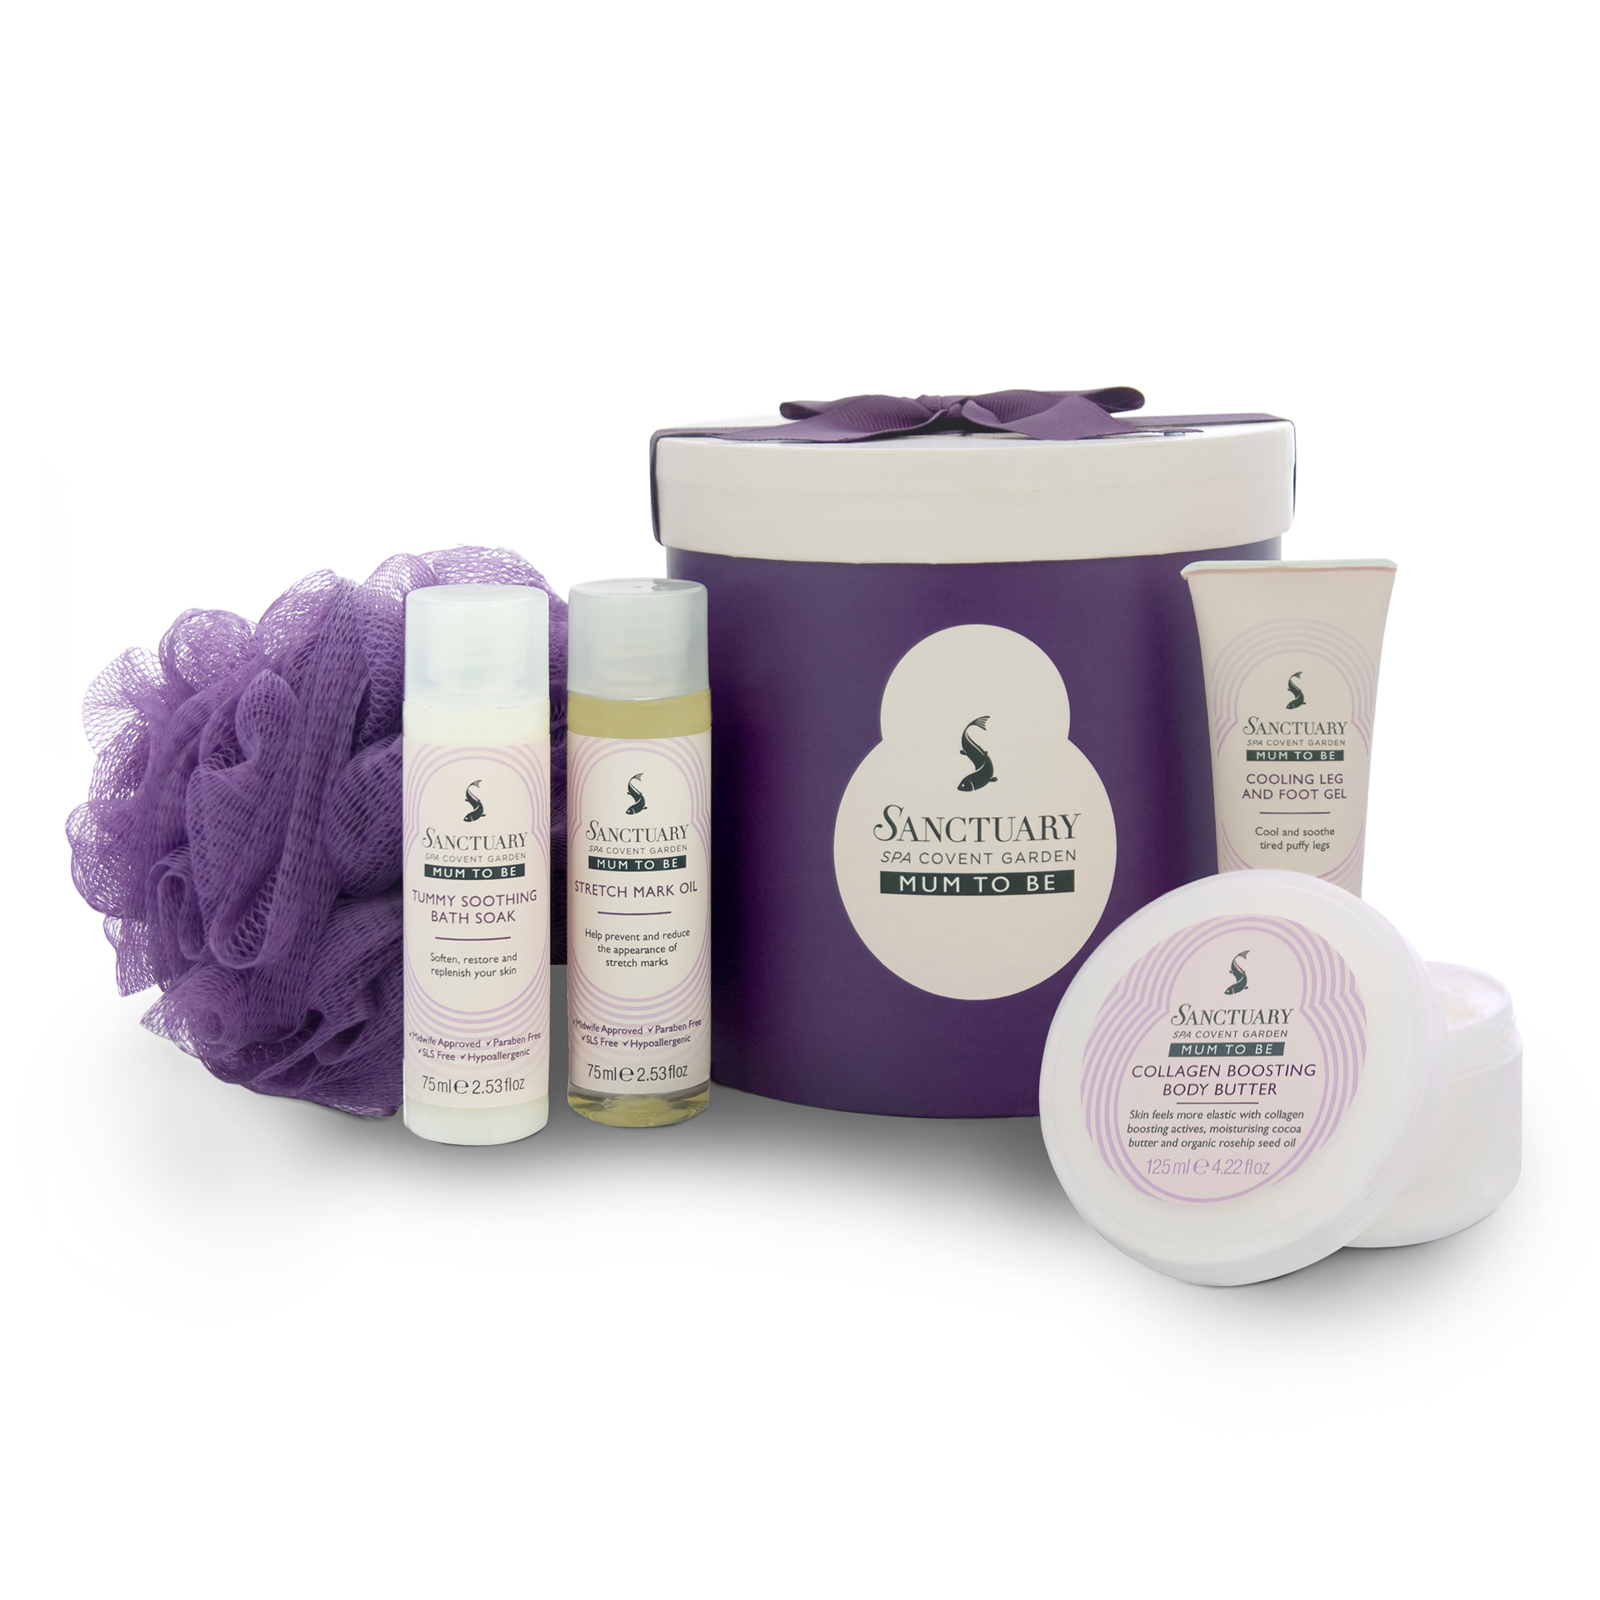 Sanctuary Spa Covent Gardens Mum To Be Bath Shower Luxury Gift Set Enlarged Preview